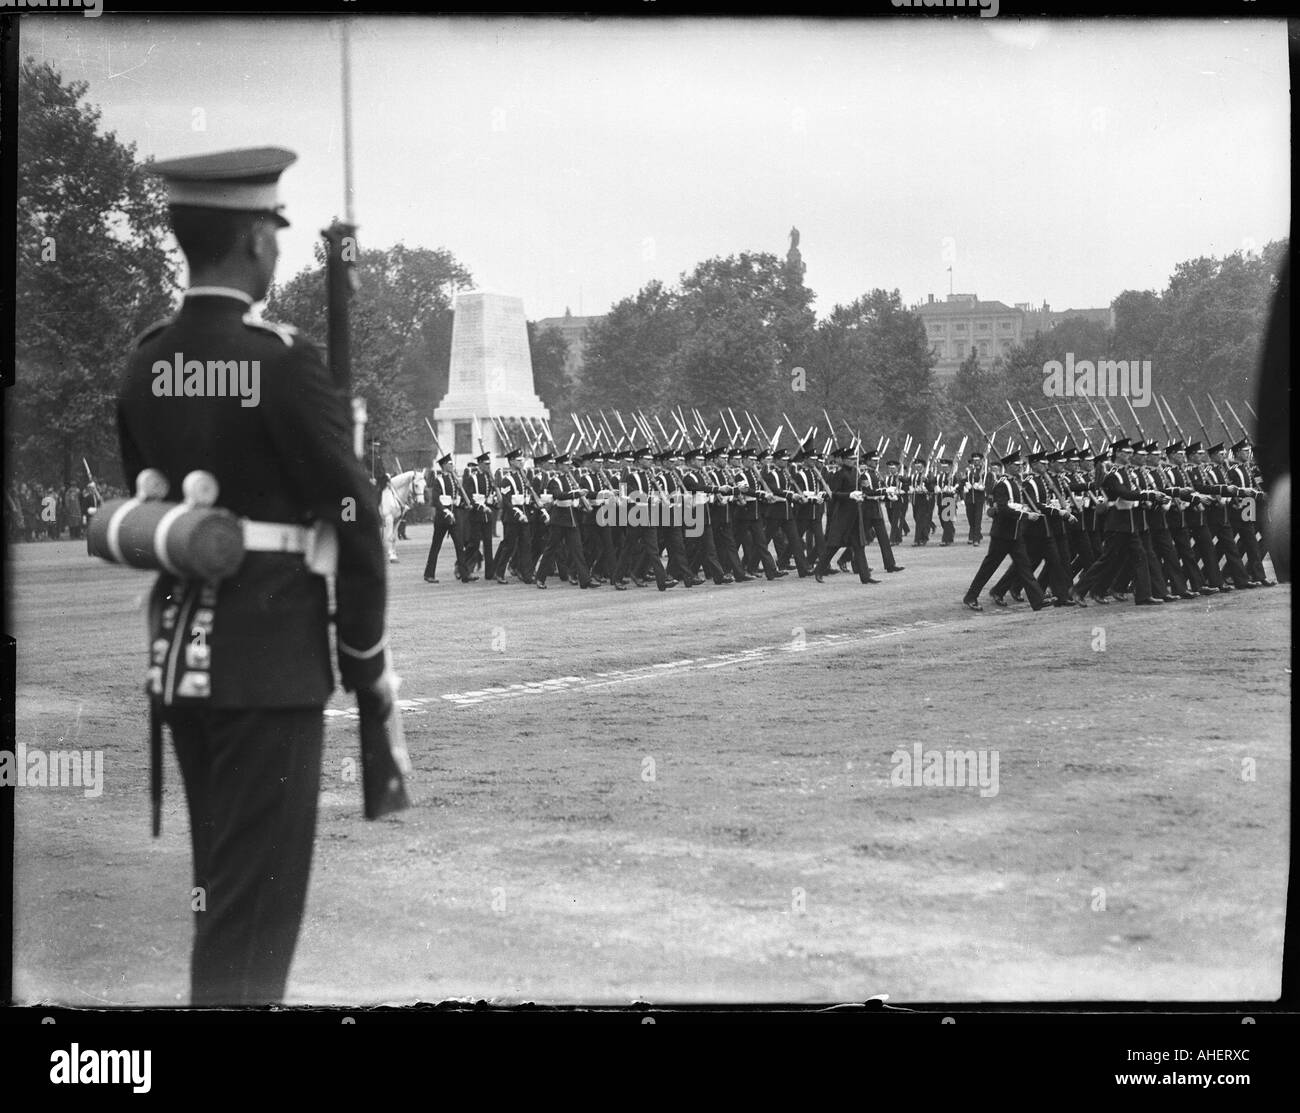 Trooping The Colour Black and White Stock Photos & Images